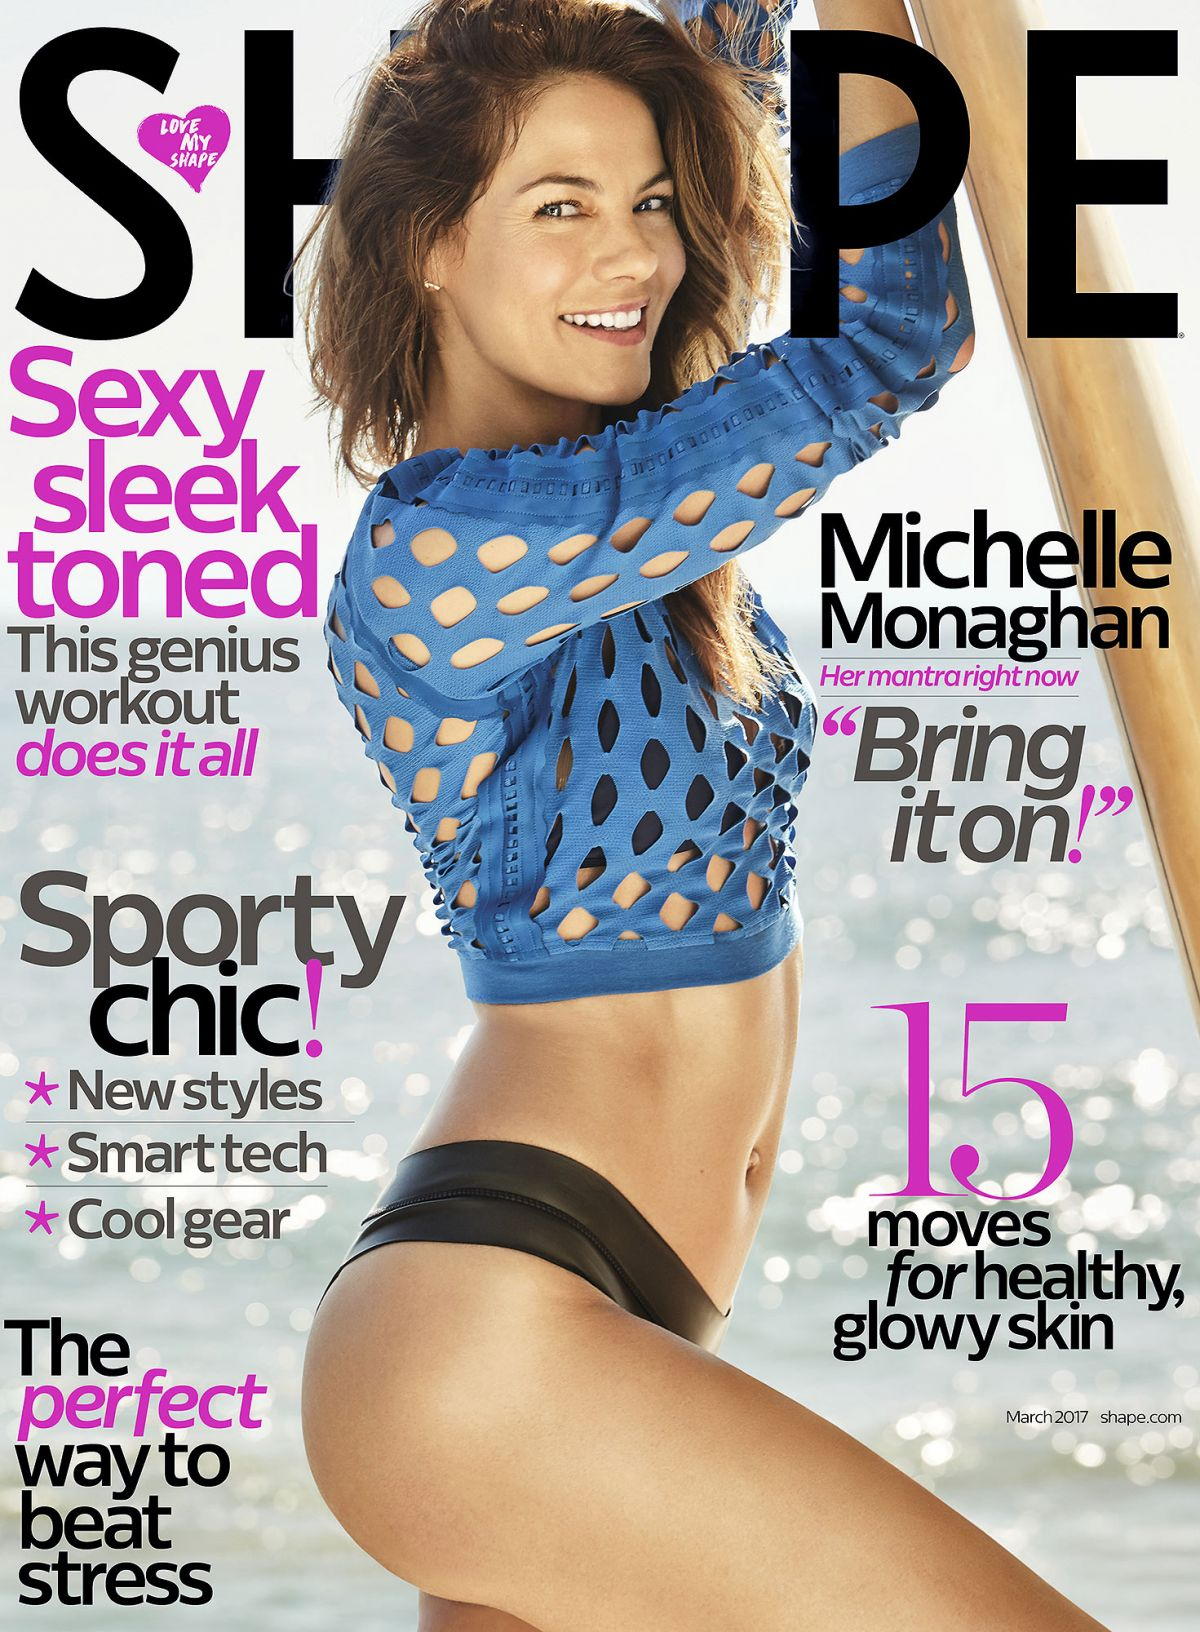 MICHELLE MONAGHAN in Shape Magazine, March 2017